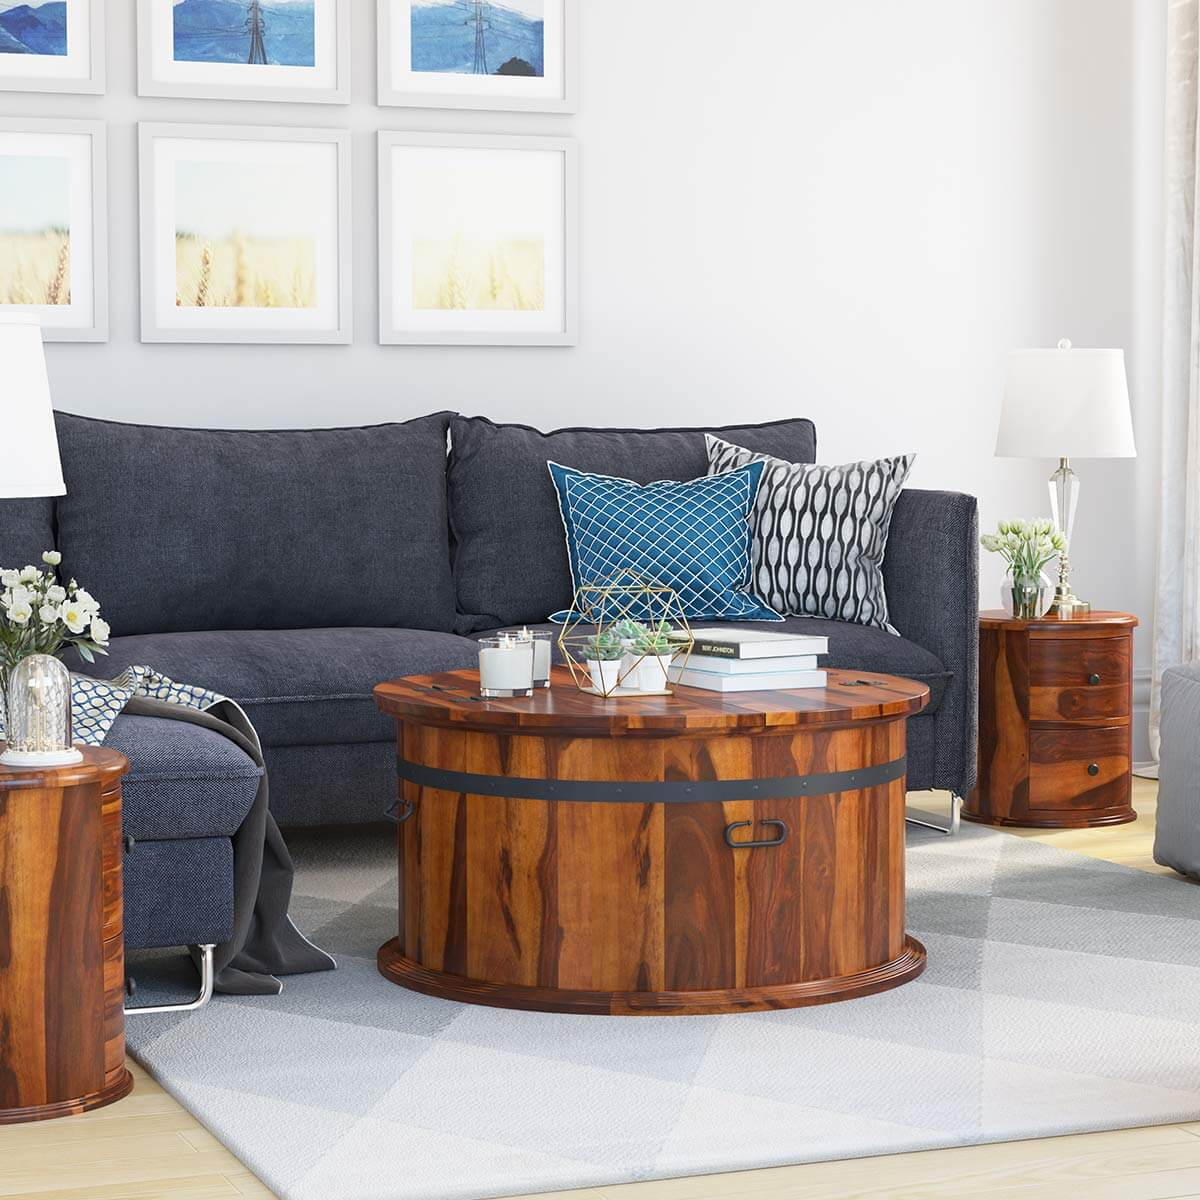 friant rustic solid wood top open storage round coffee table